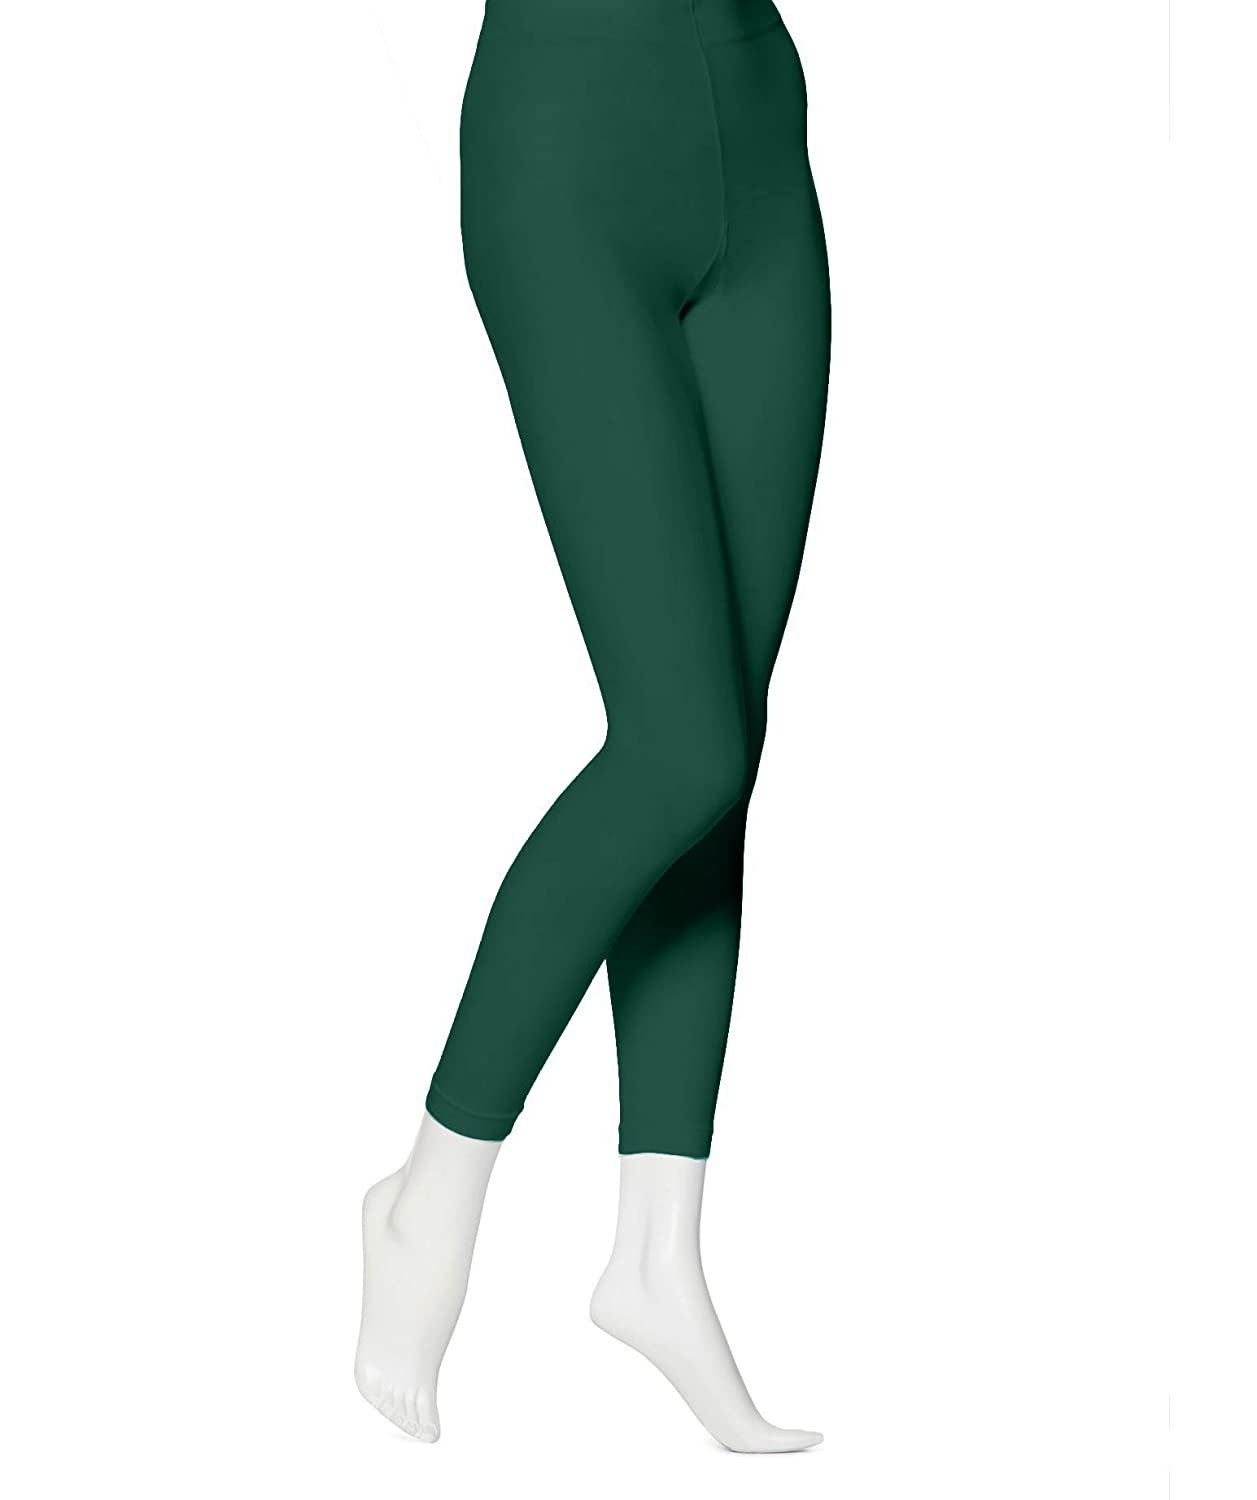 EMEM Apparel Women's Solid Colored Opaque Microfiber Footless Tights